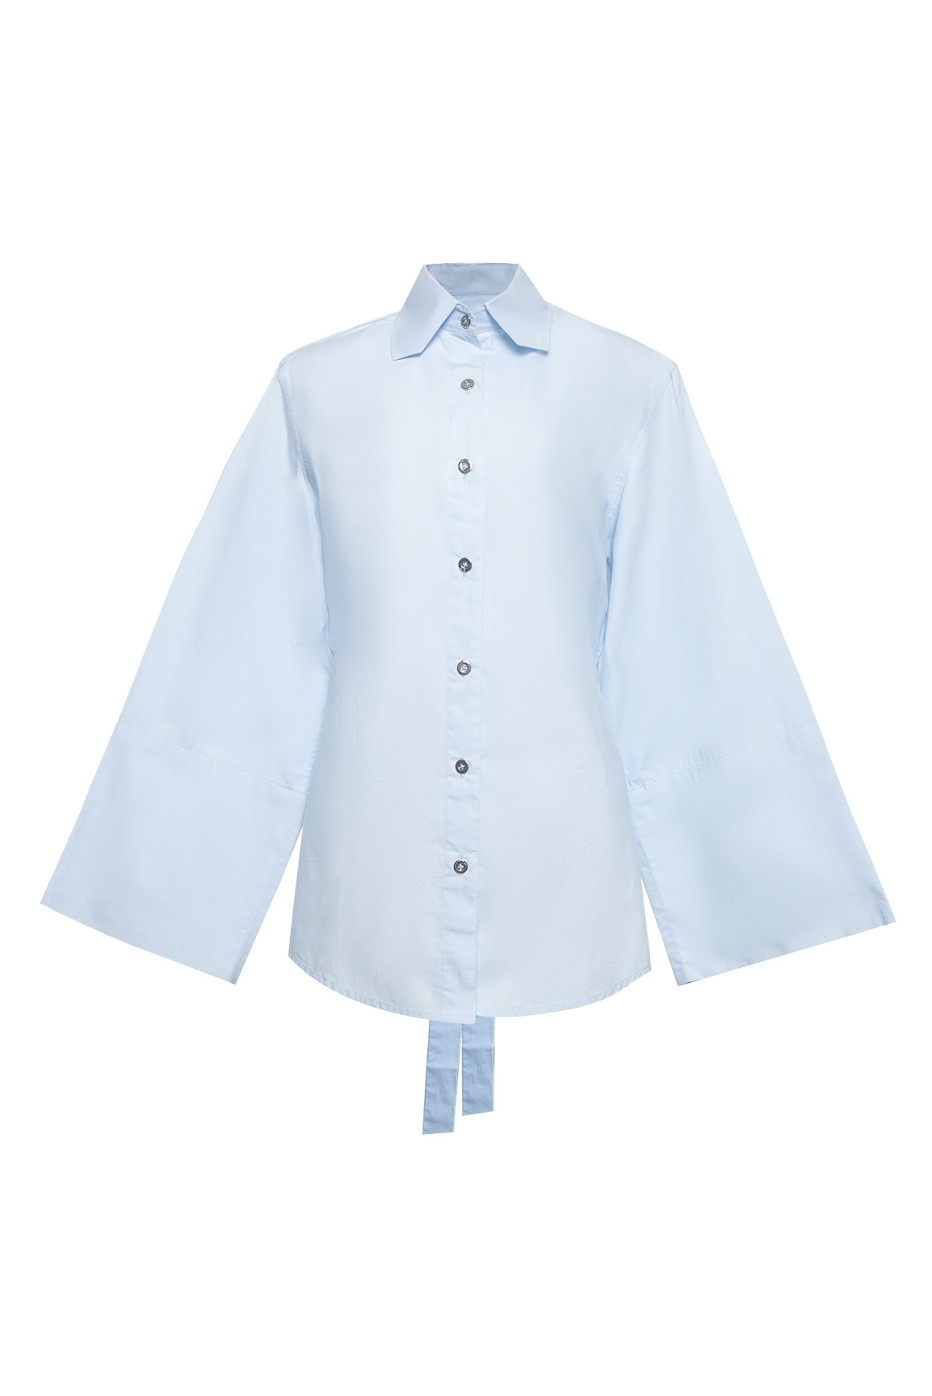 Backless Cotton Shirt with Tie Fastener